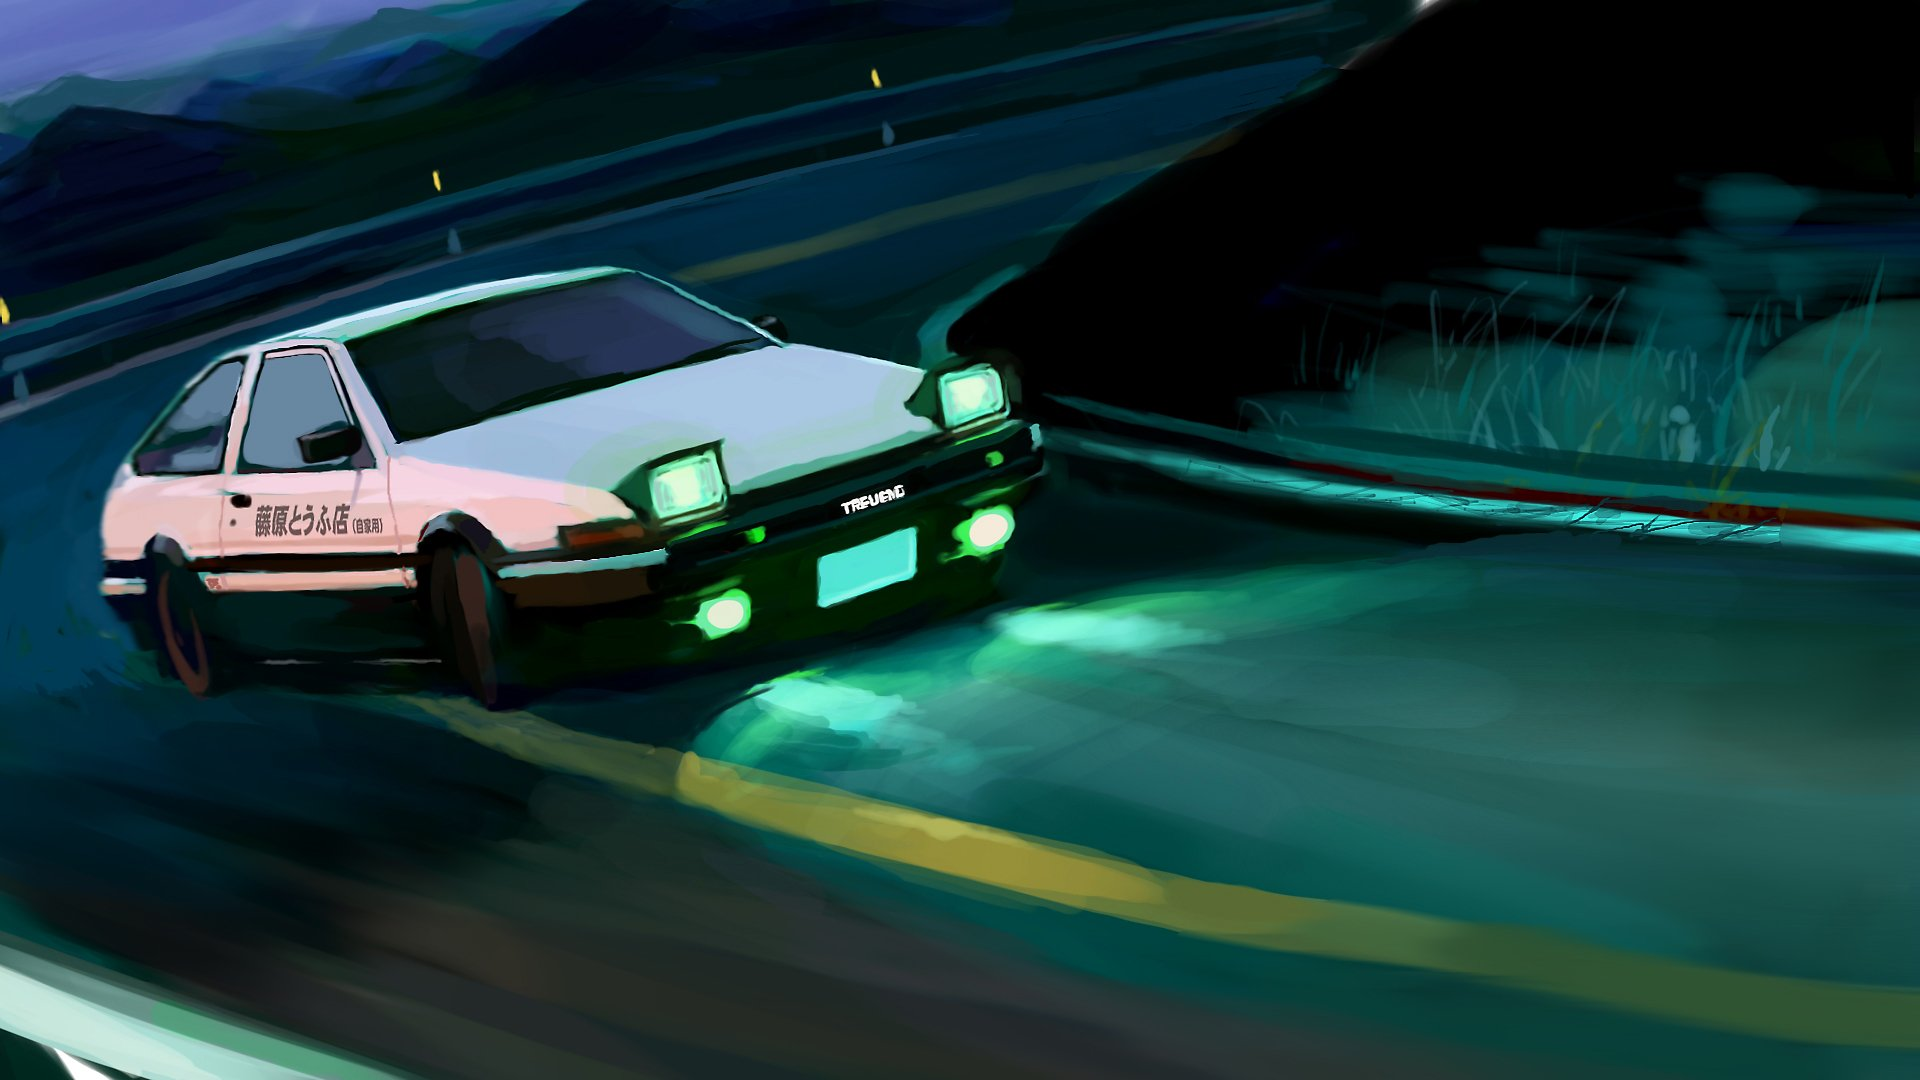 Initial d final stage hd wallpaper background image - Ae86 initial d wallpaper ...